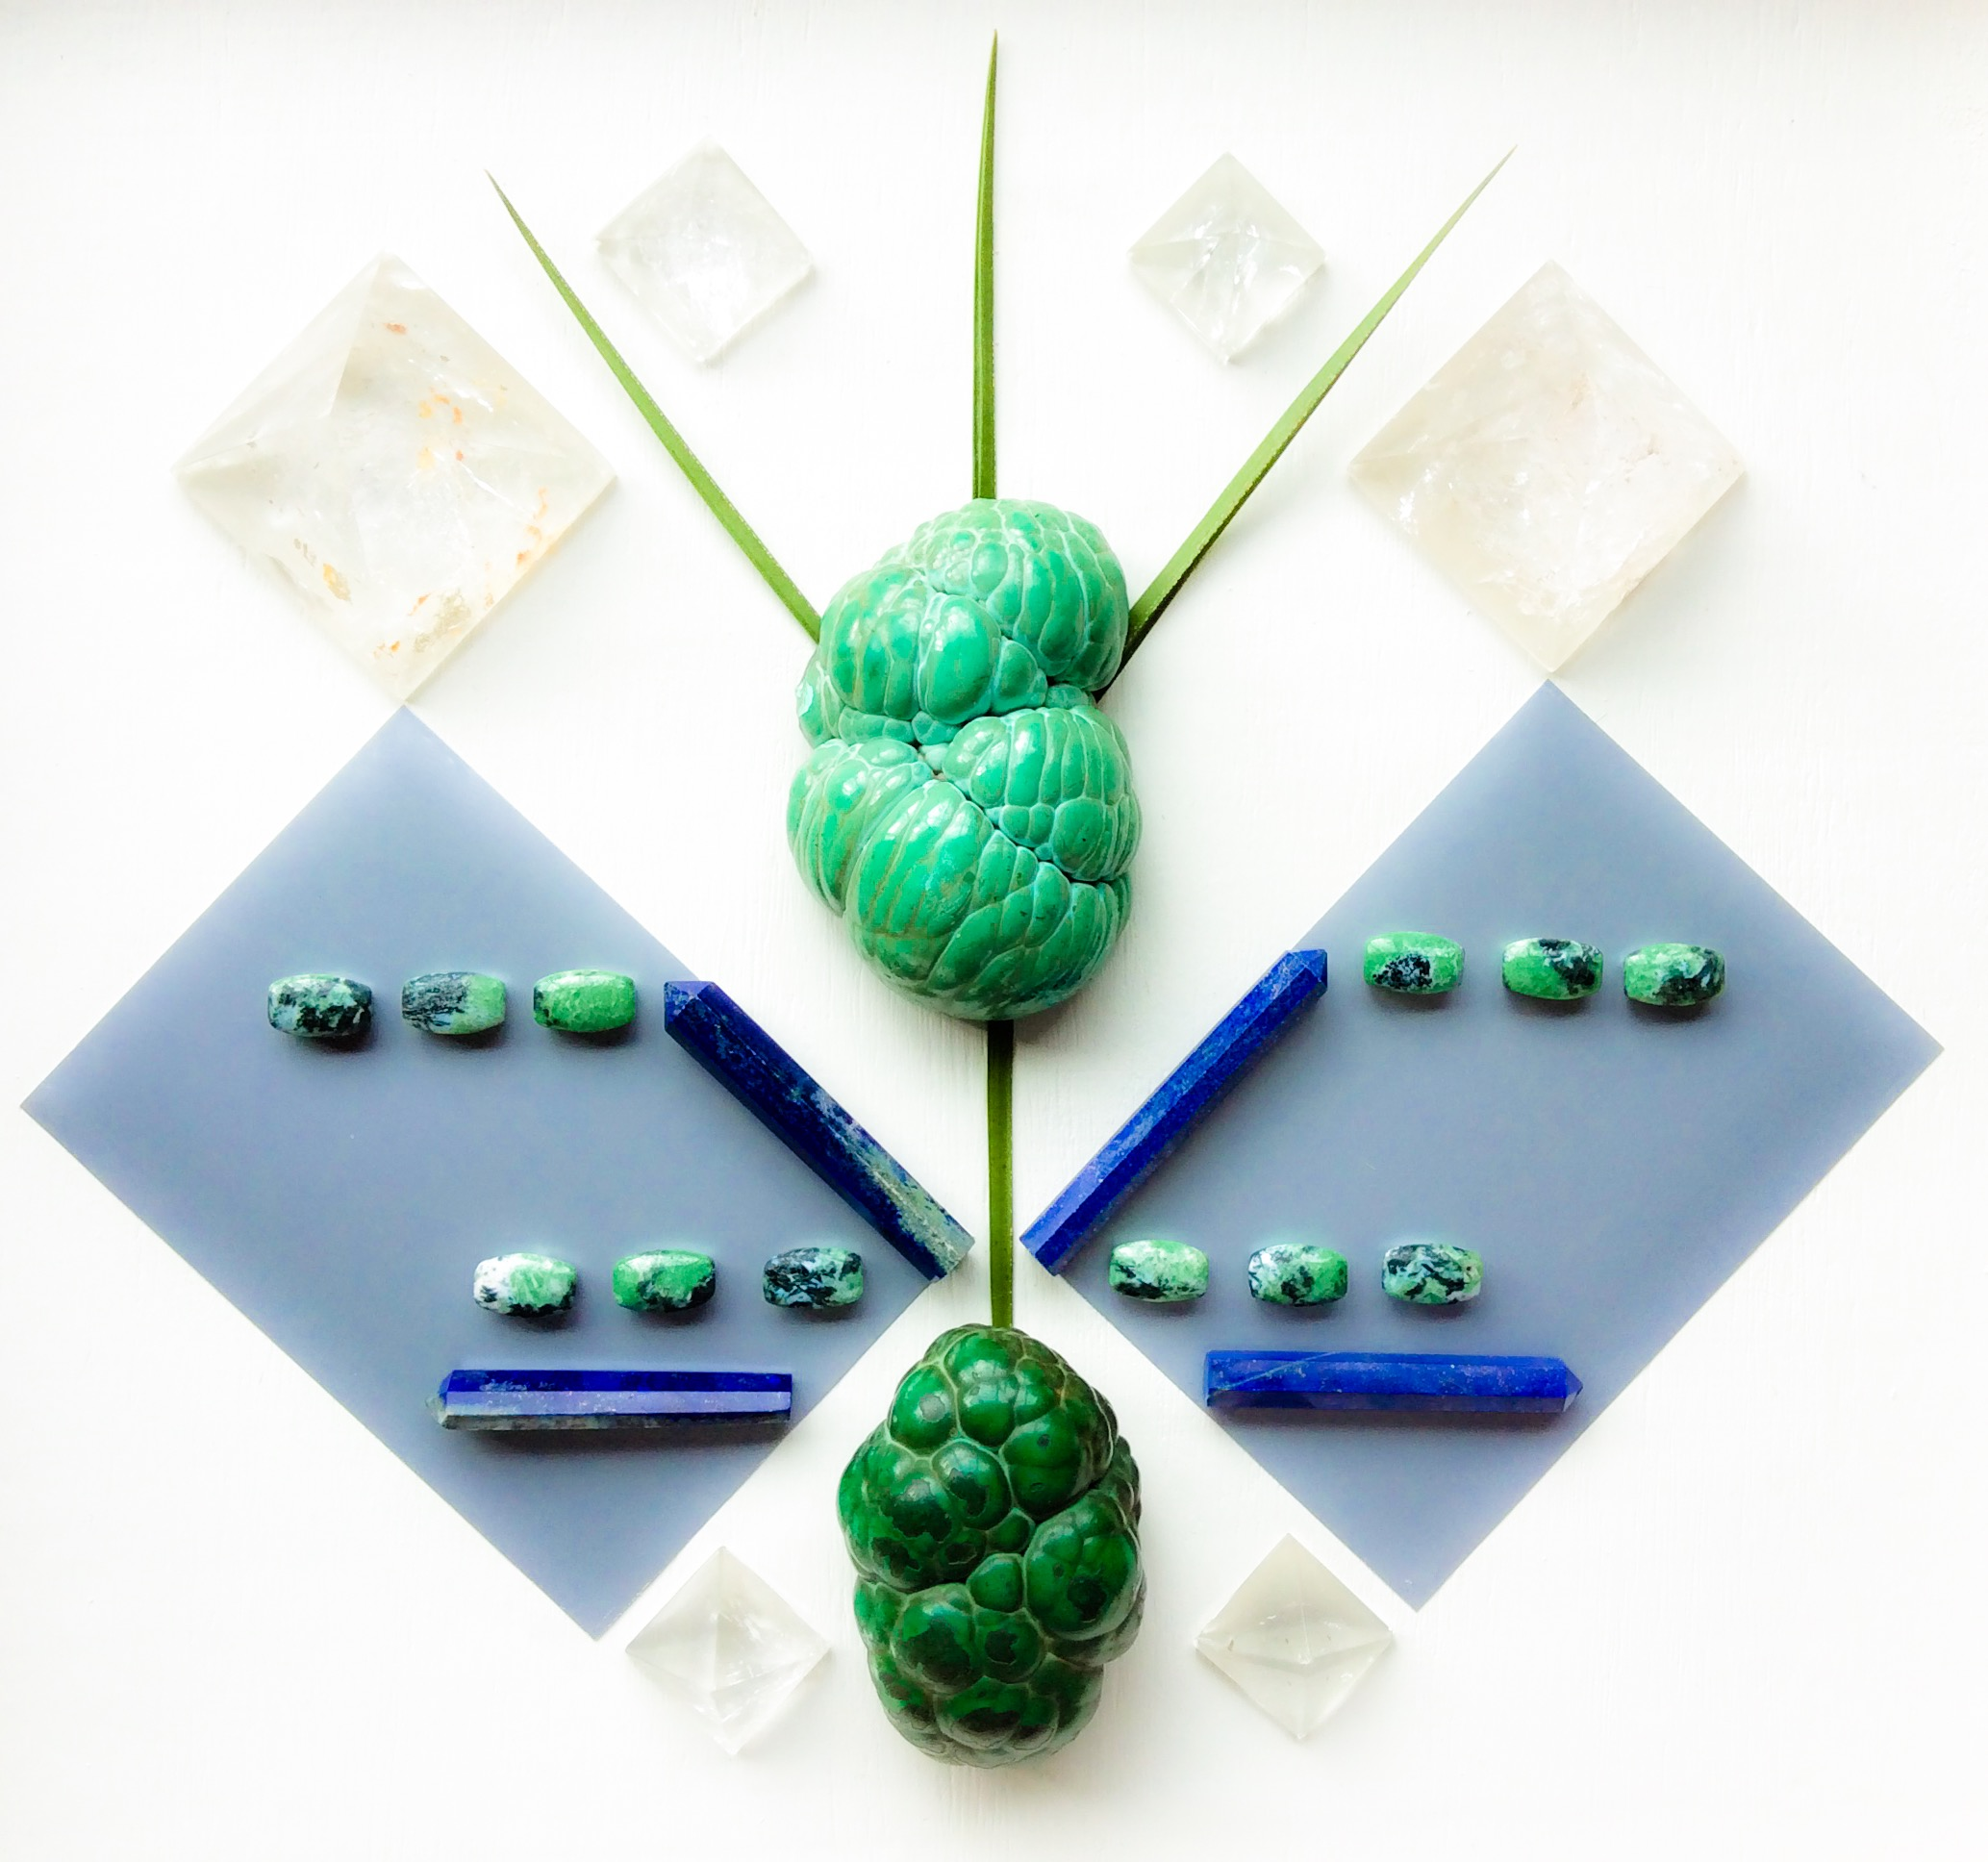 Malachite, Lapis Lazuli, Zoisite, Quartz and Leaves